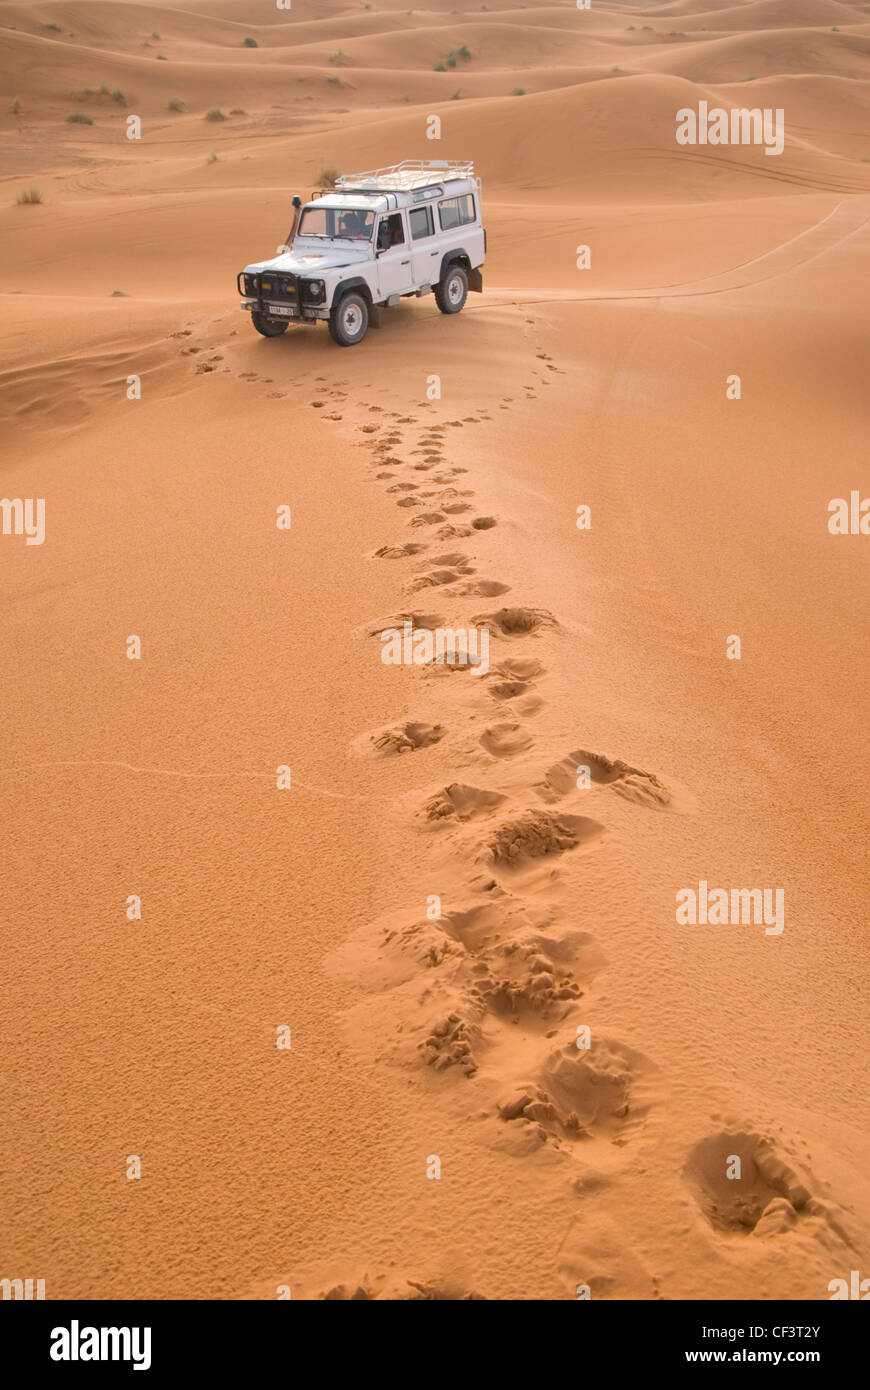 Foot prints in the sand lead to an off road 4x4 vehicle in the Erg Chebi desert. - Stock Image